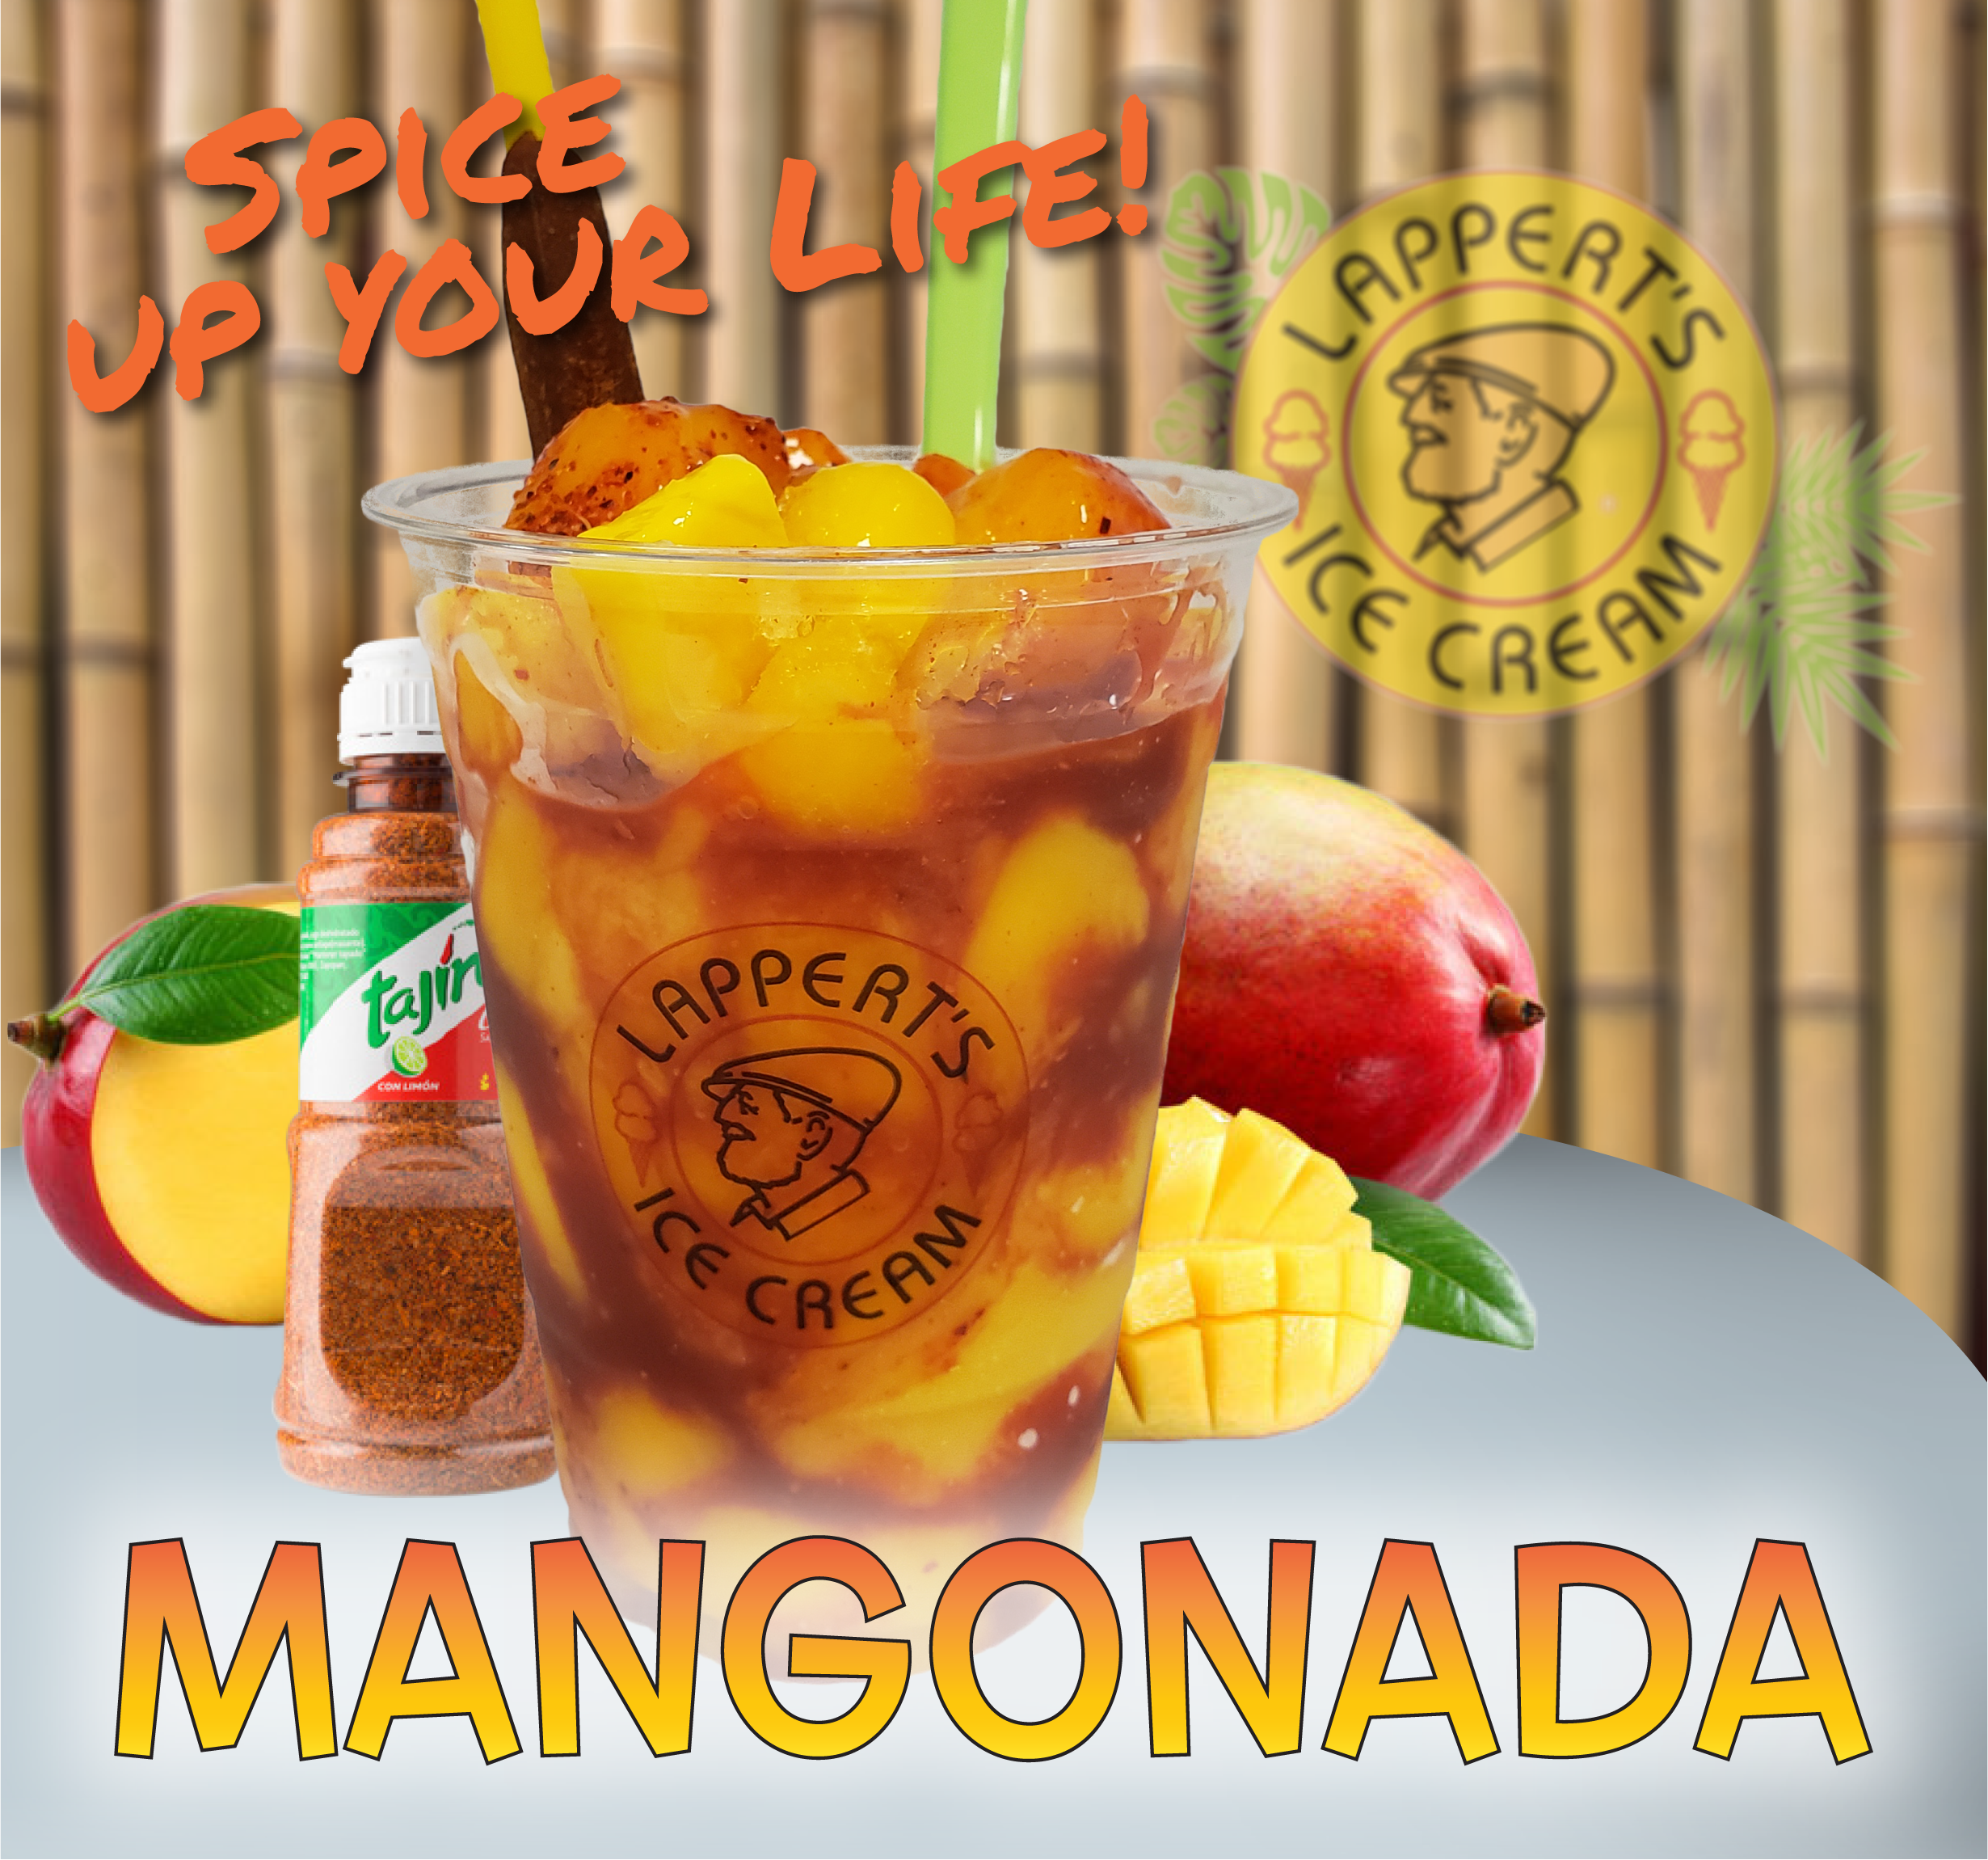 Your New Favorite Desert Will be the Lappert's Mangonada!!